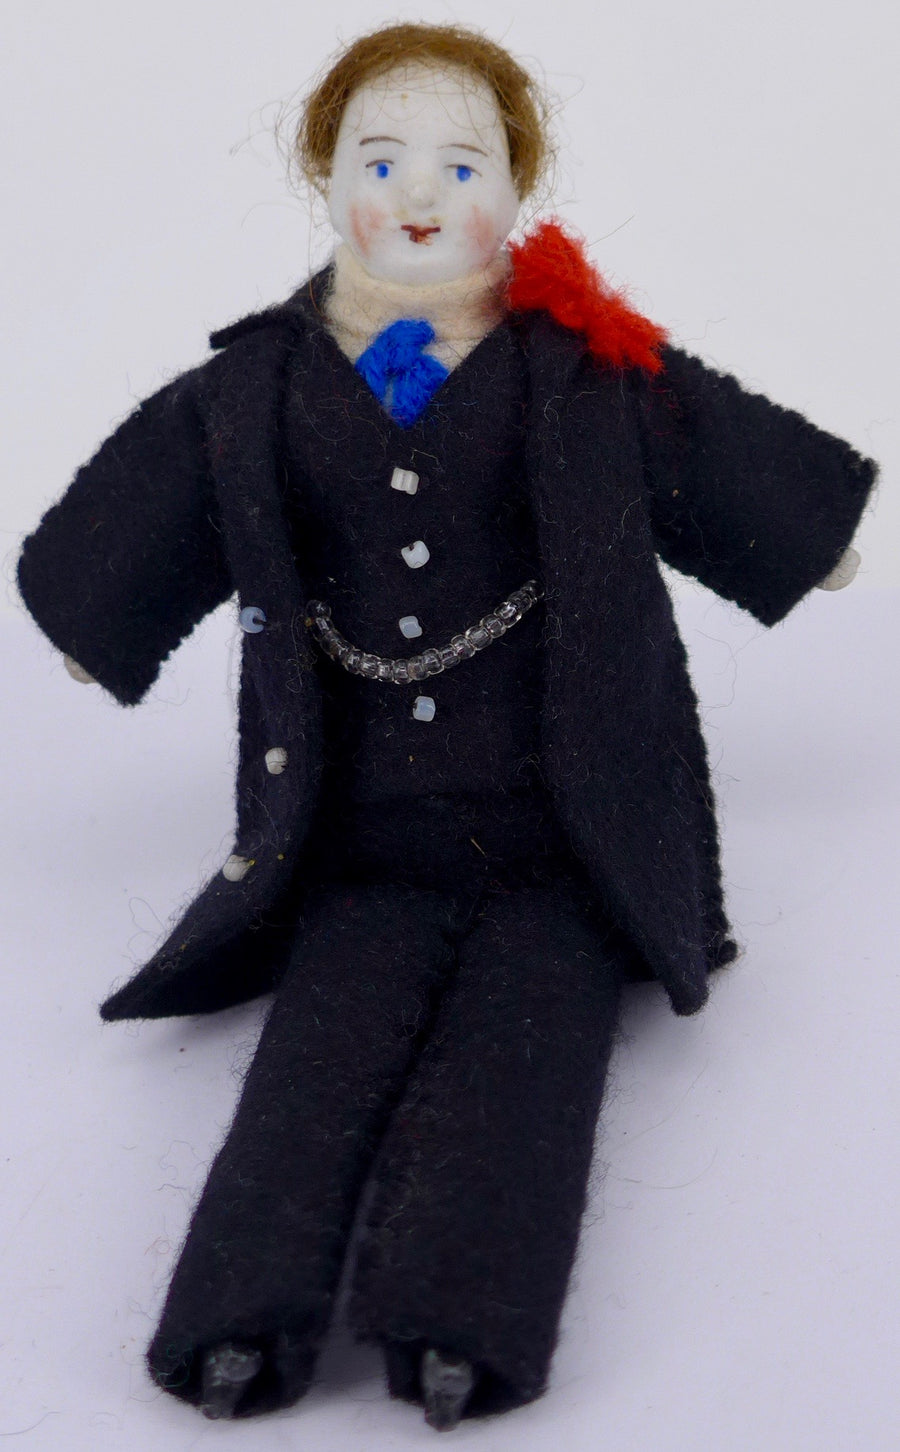 male bisque dollhouse doll, black suit